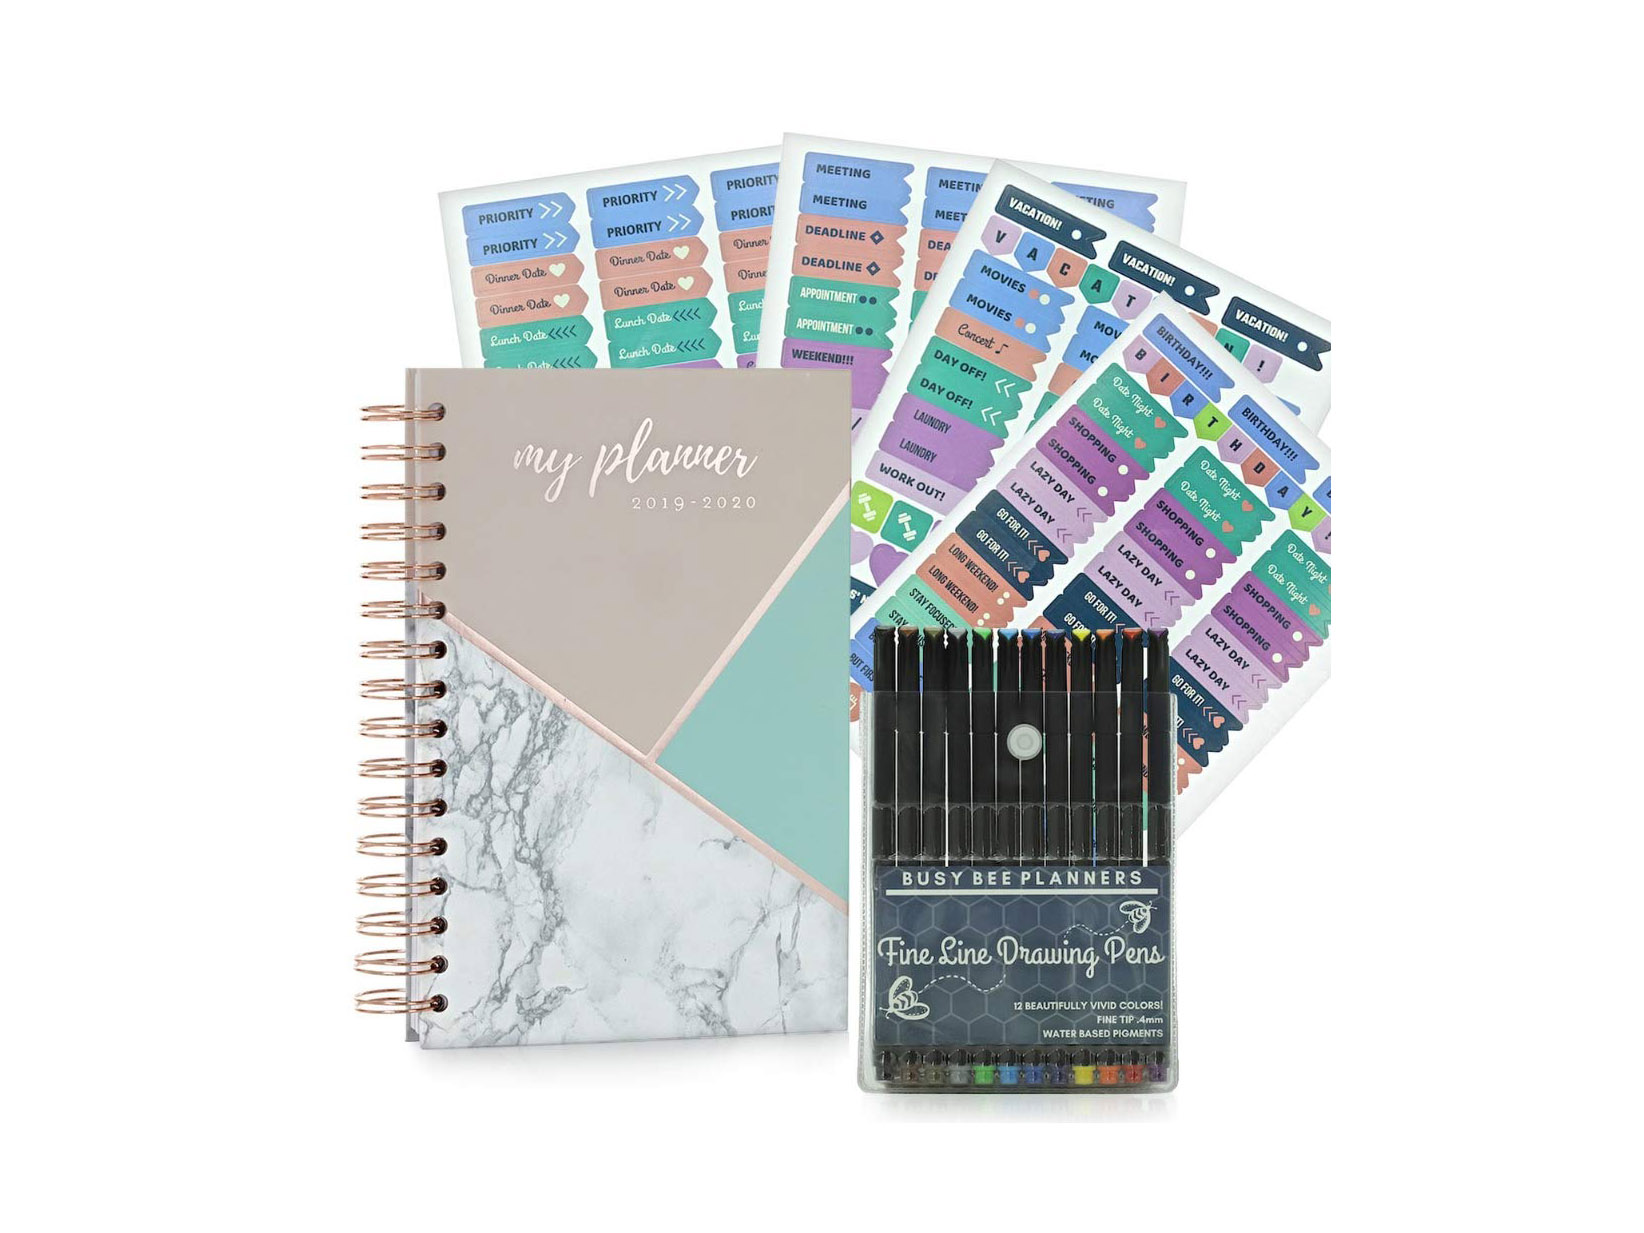 Busy Bee Planner with Stickers and Pens